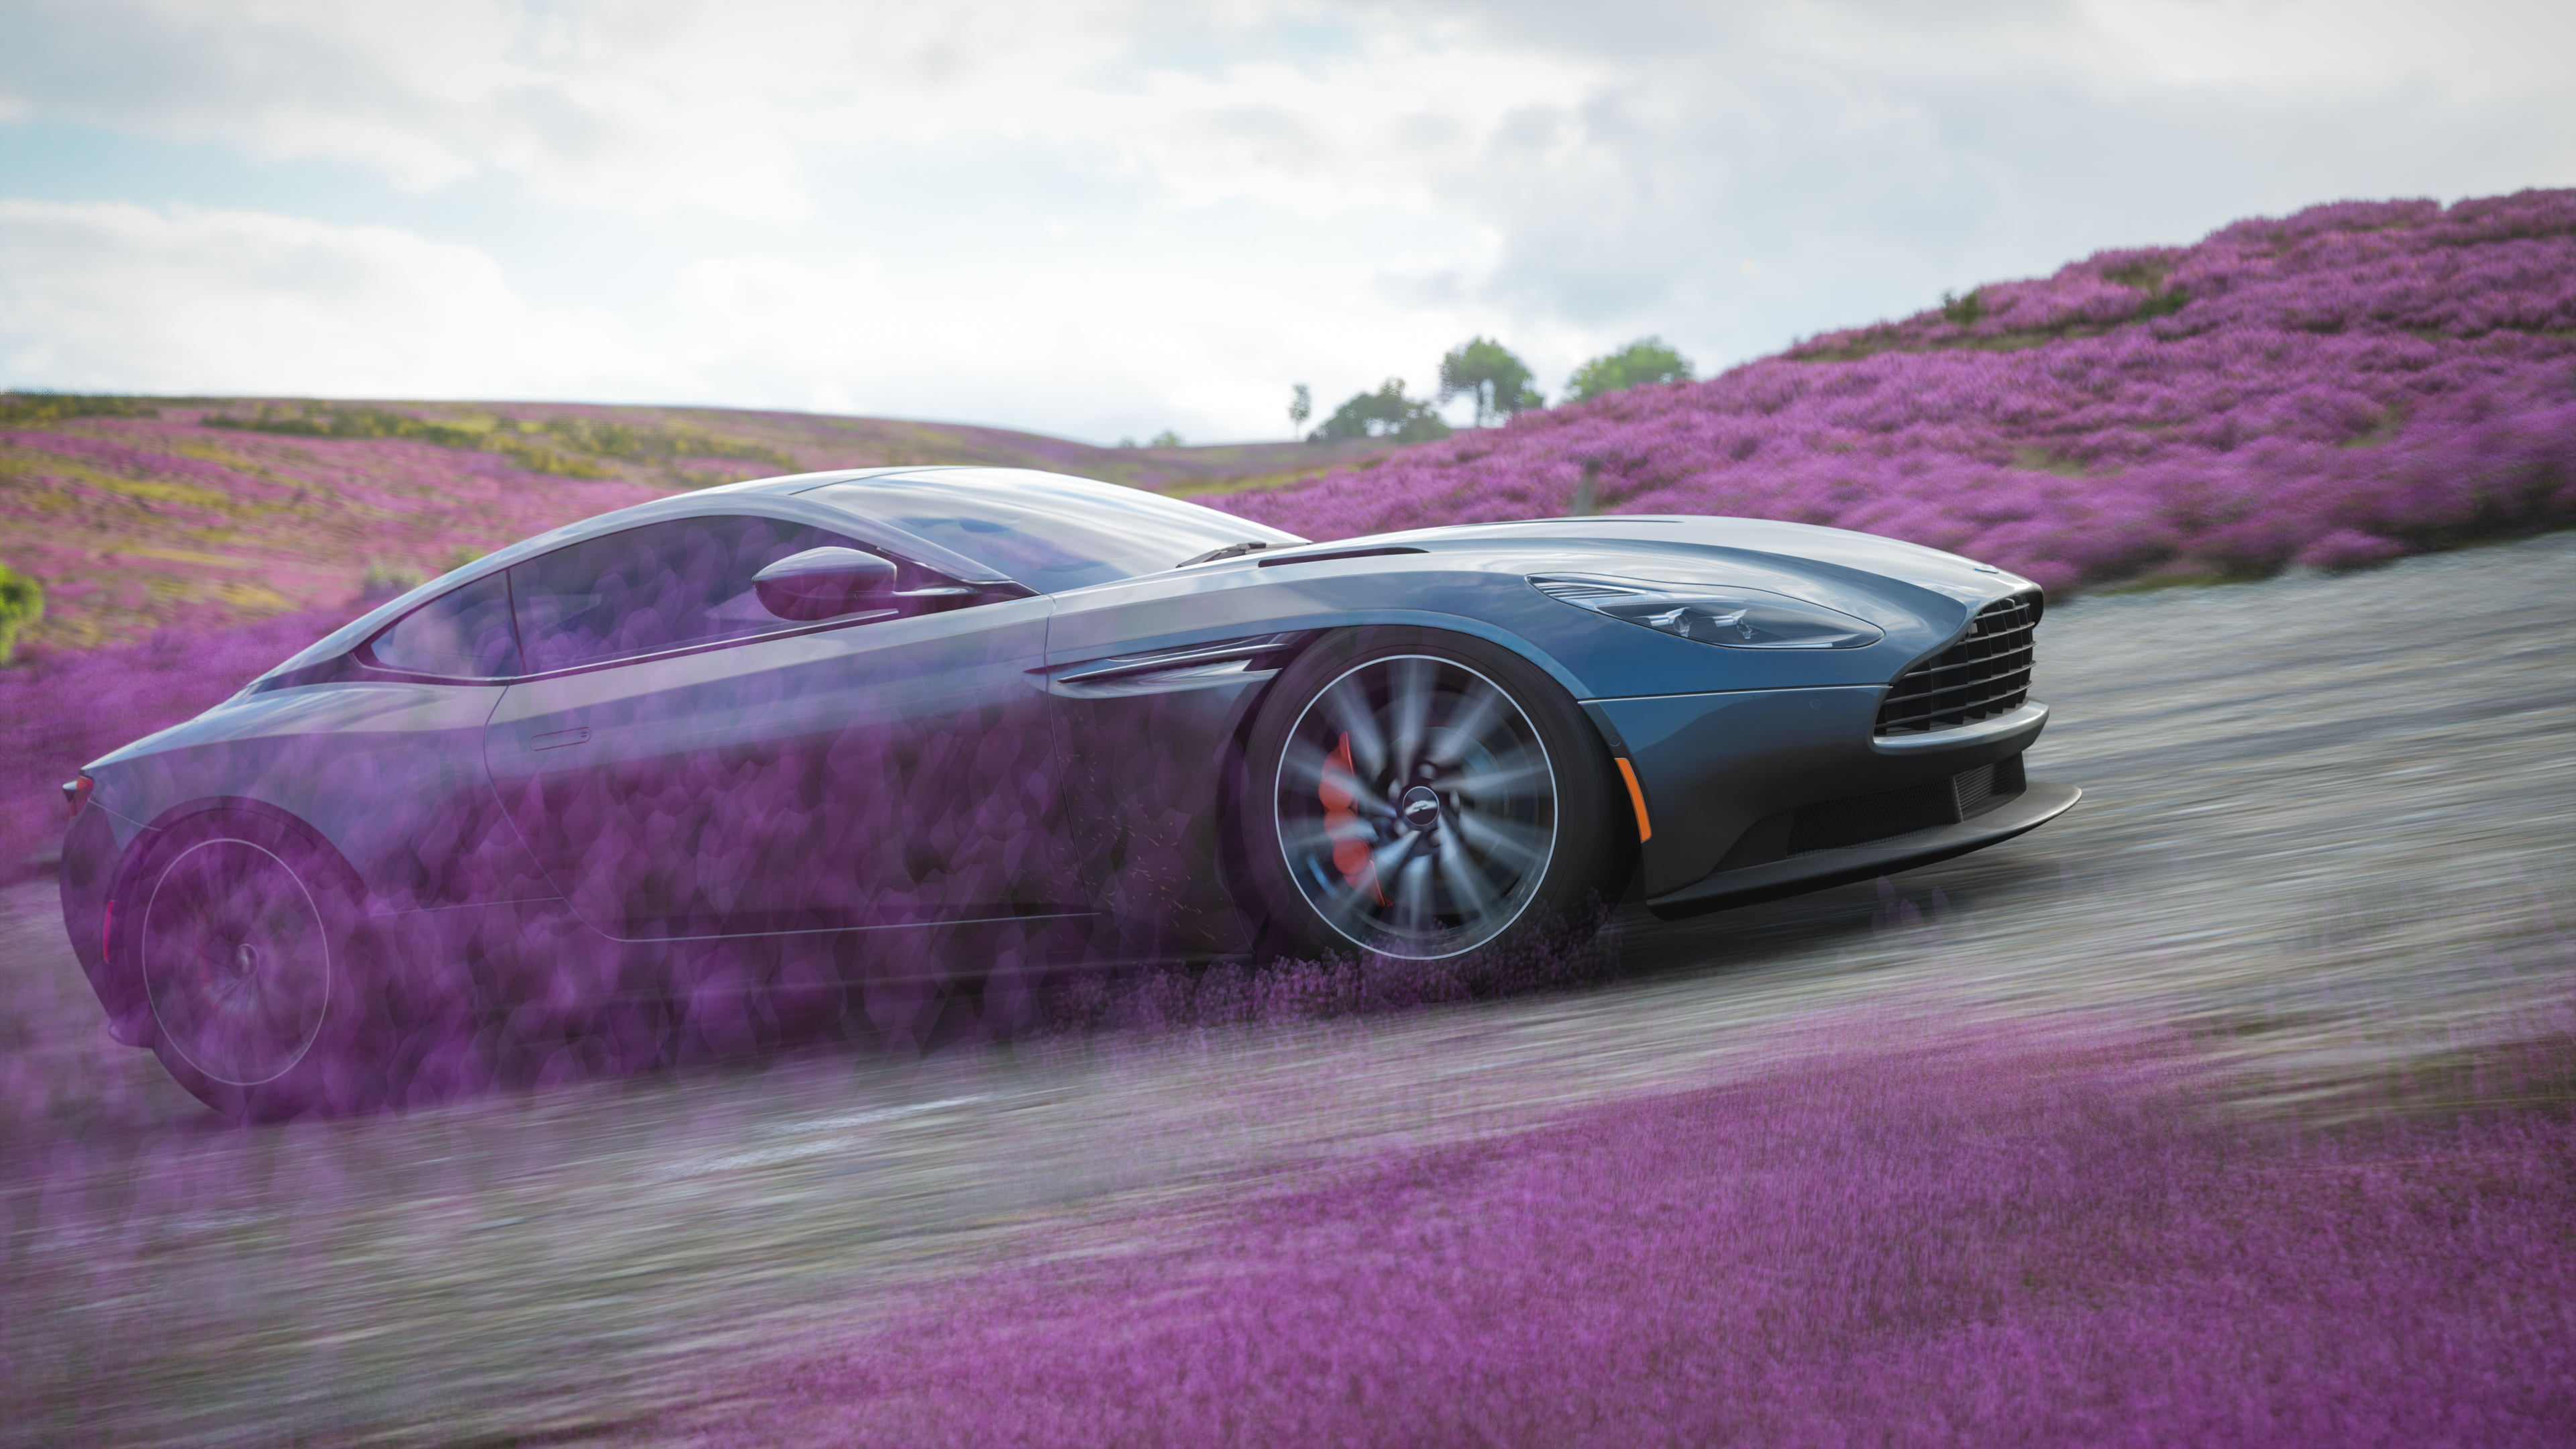 Aston martin db11 forza horizon 4 hd games 4k wallpapers images backgrounds photos and pictures - Forza logo wallpaper ...